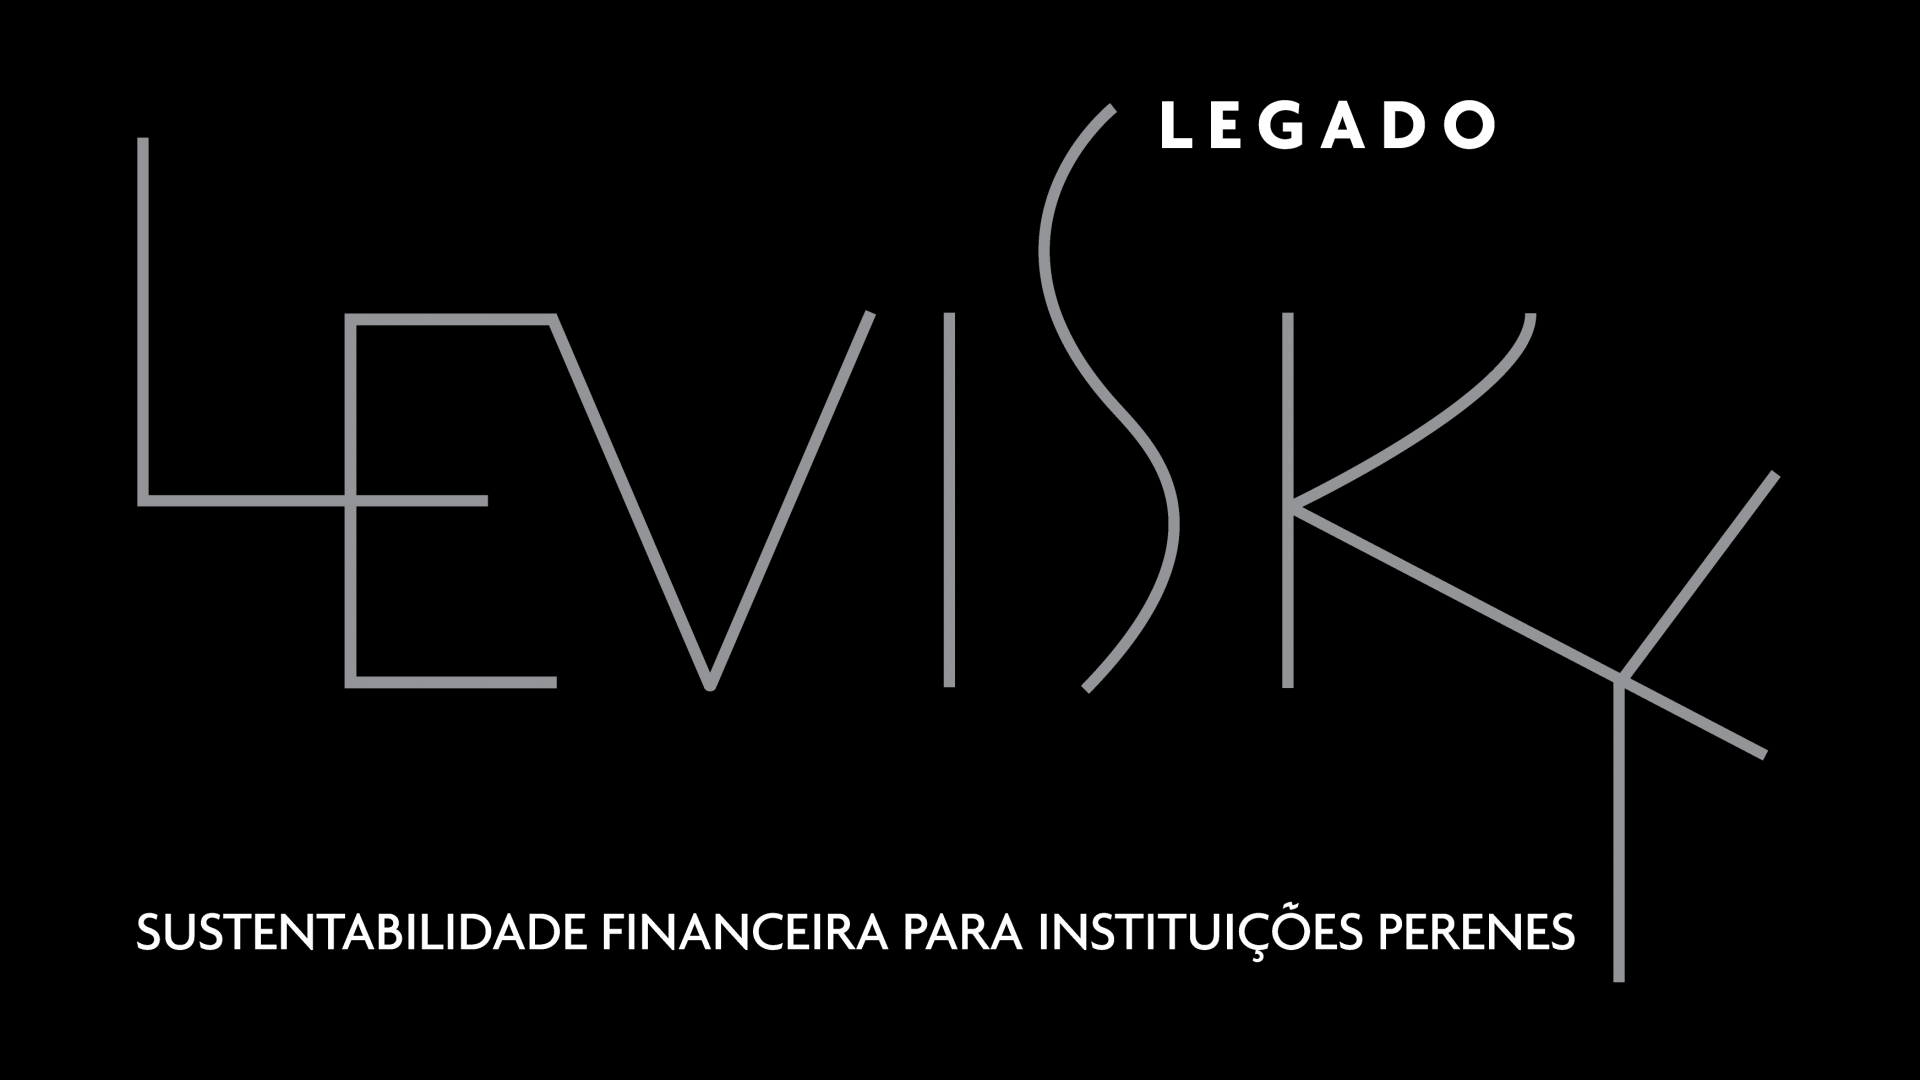 Levisky Legado e Fórum de Endowments